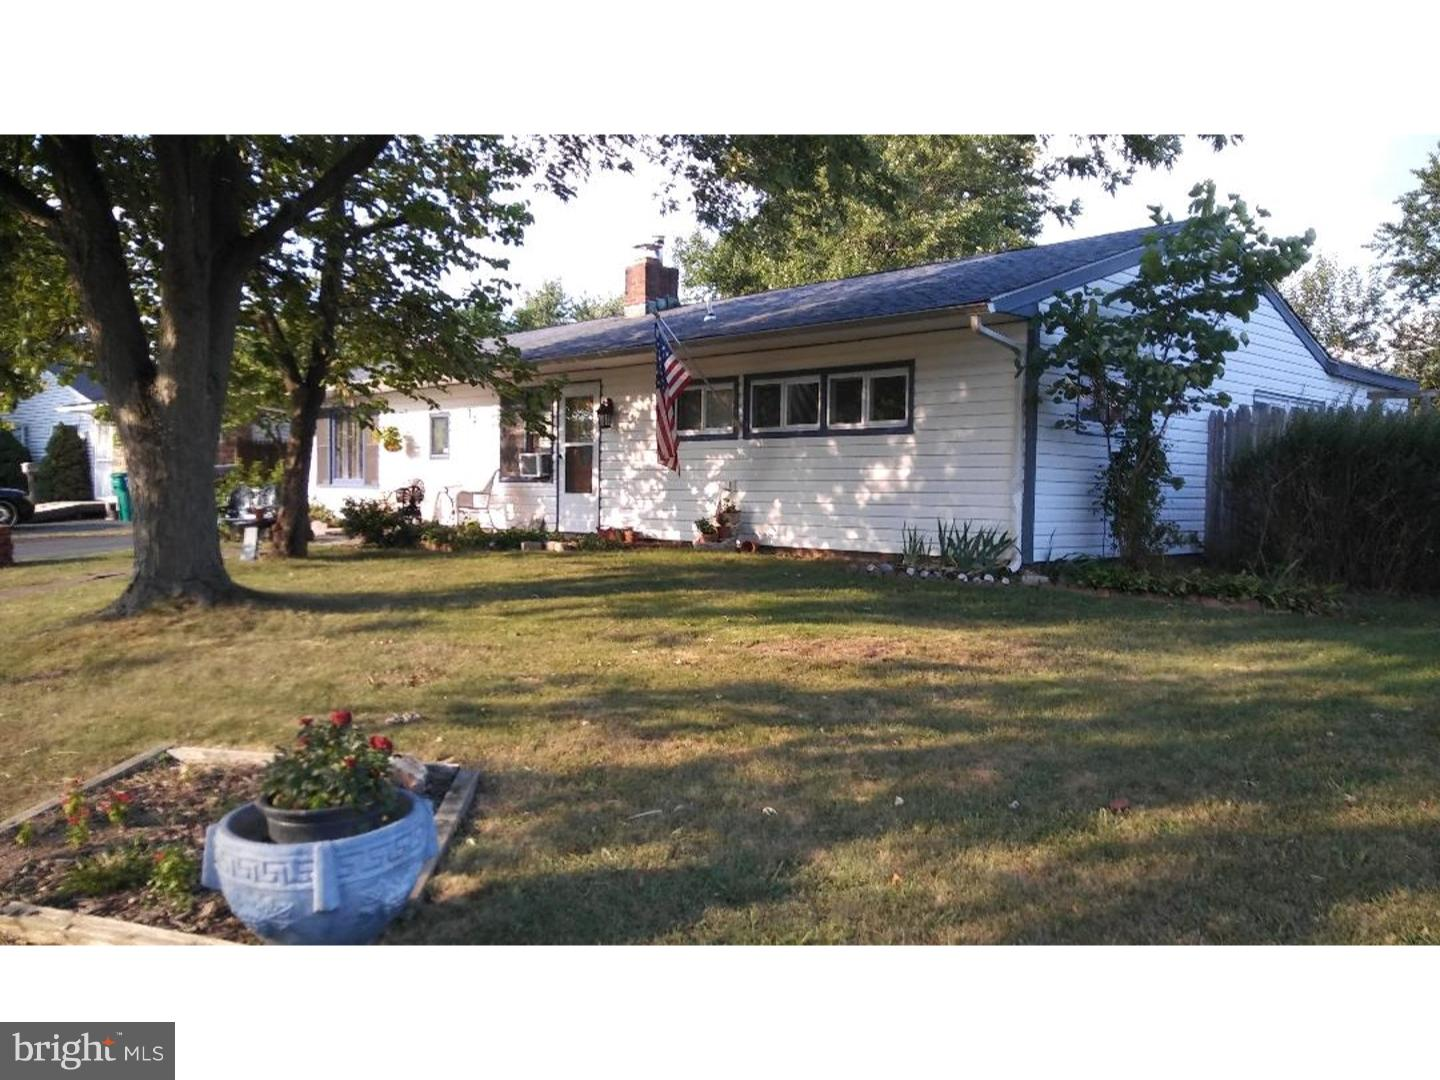 19047 4 Bedroom Home For Sale